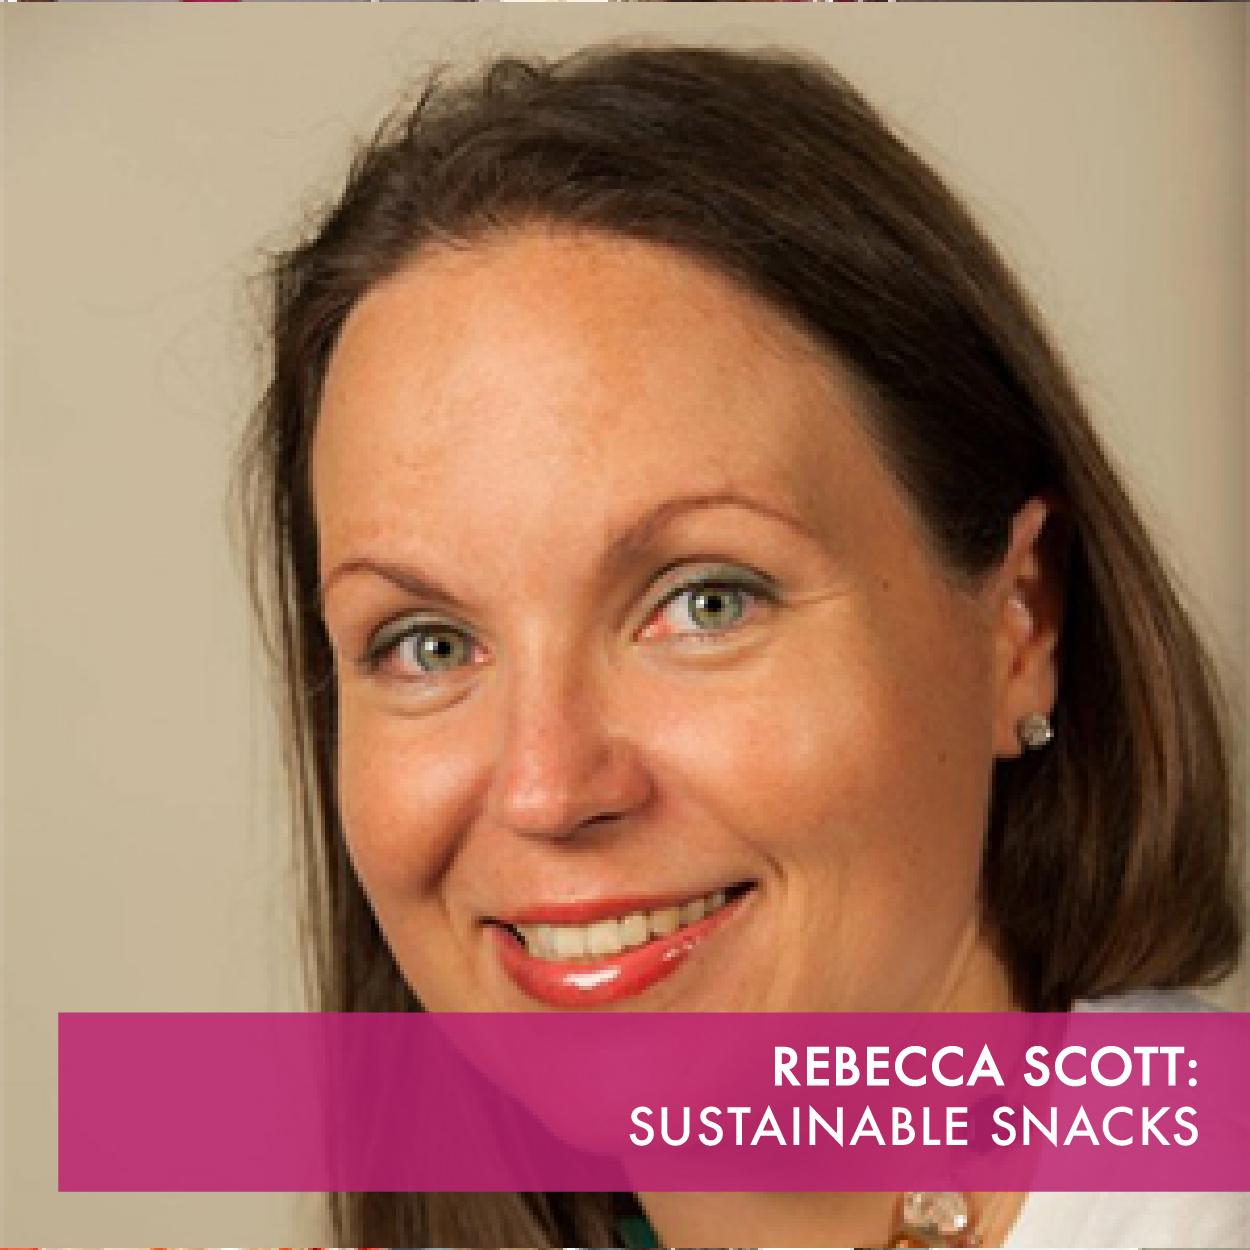 Sustainable Snacks is a natural foods company committed to producing nutritional snacks. We are known for plant-based ingredients and support of communities and the environment.